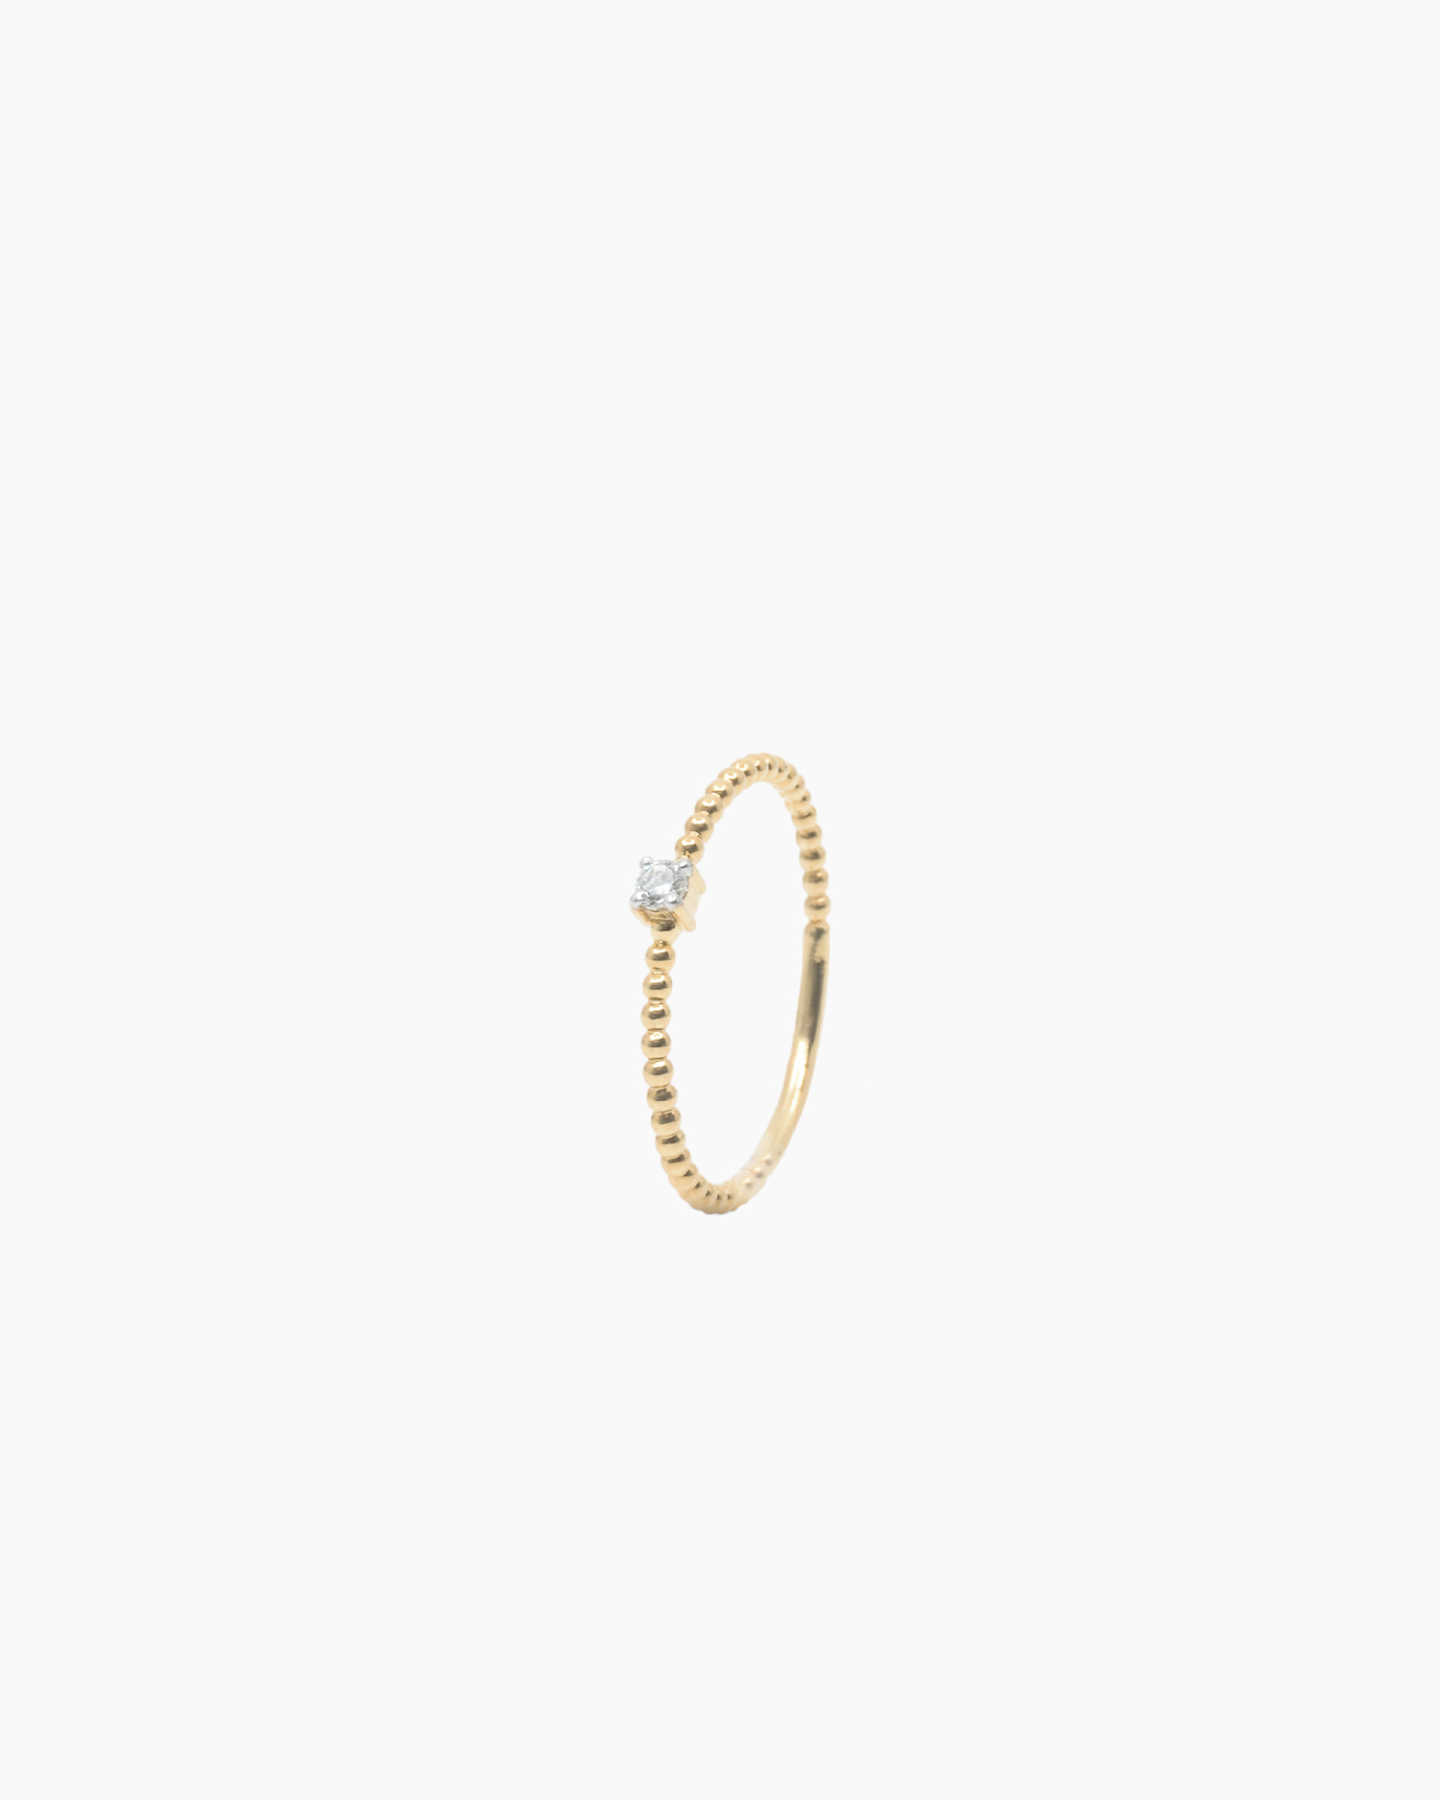 Diamond Beaded Ring - Yellow Gold - 0